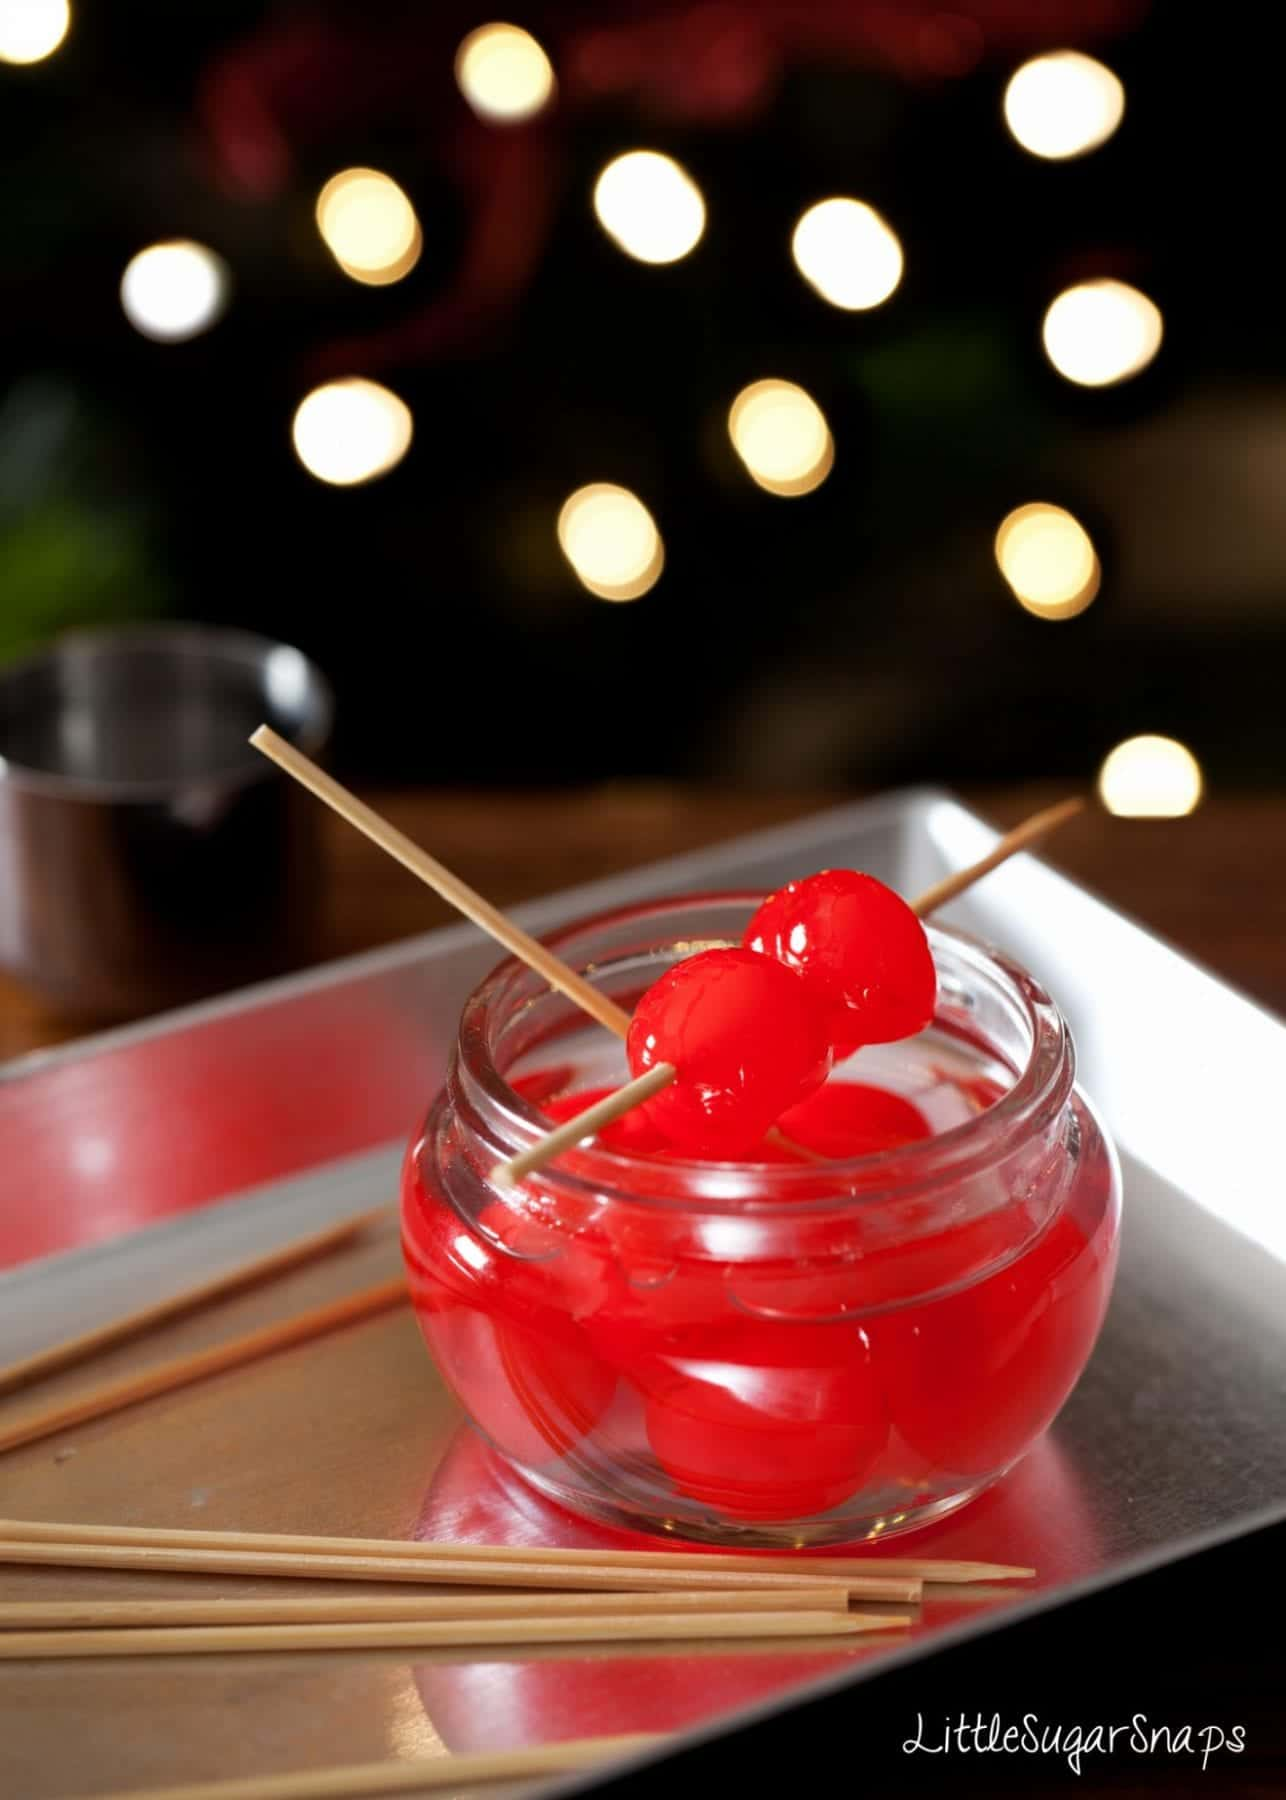 A pot of maraschino cocktail cherries on a tray with wooden cocktail sticks